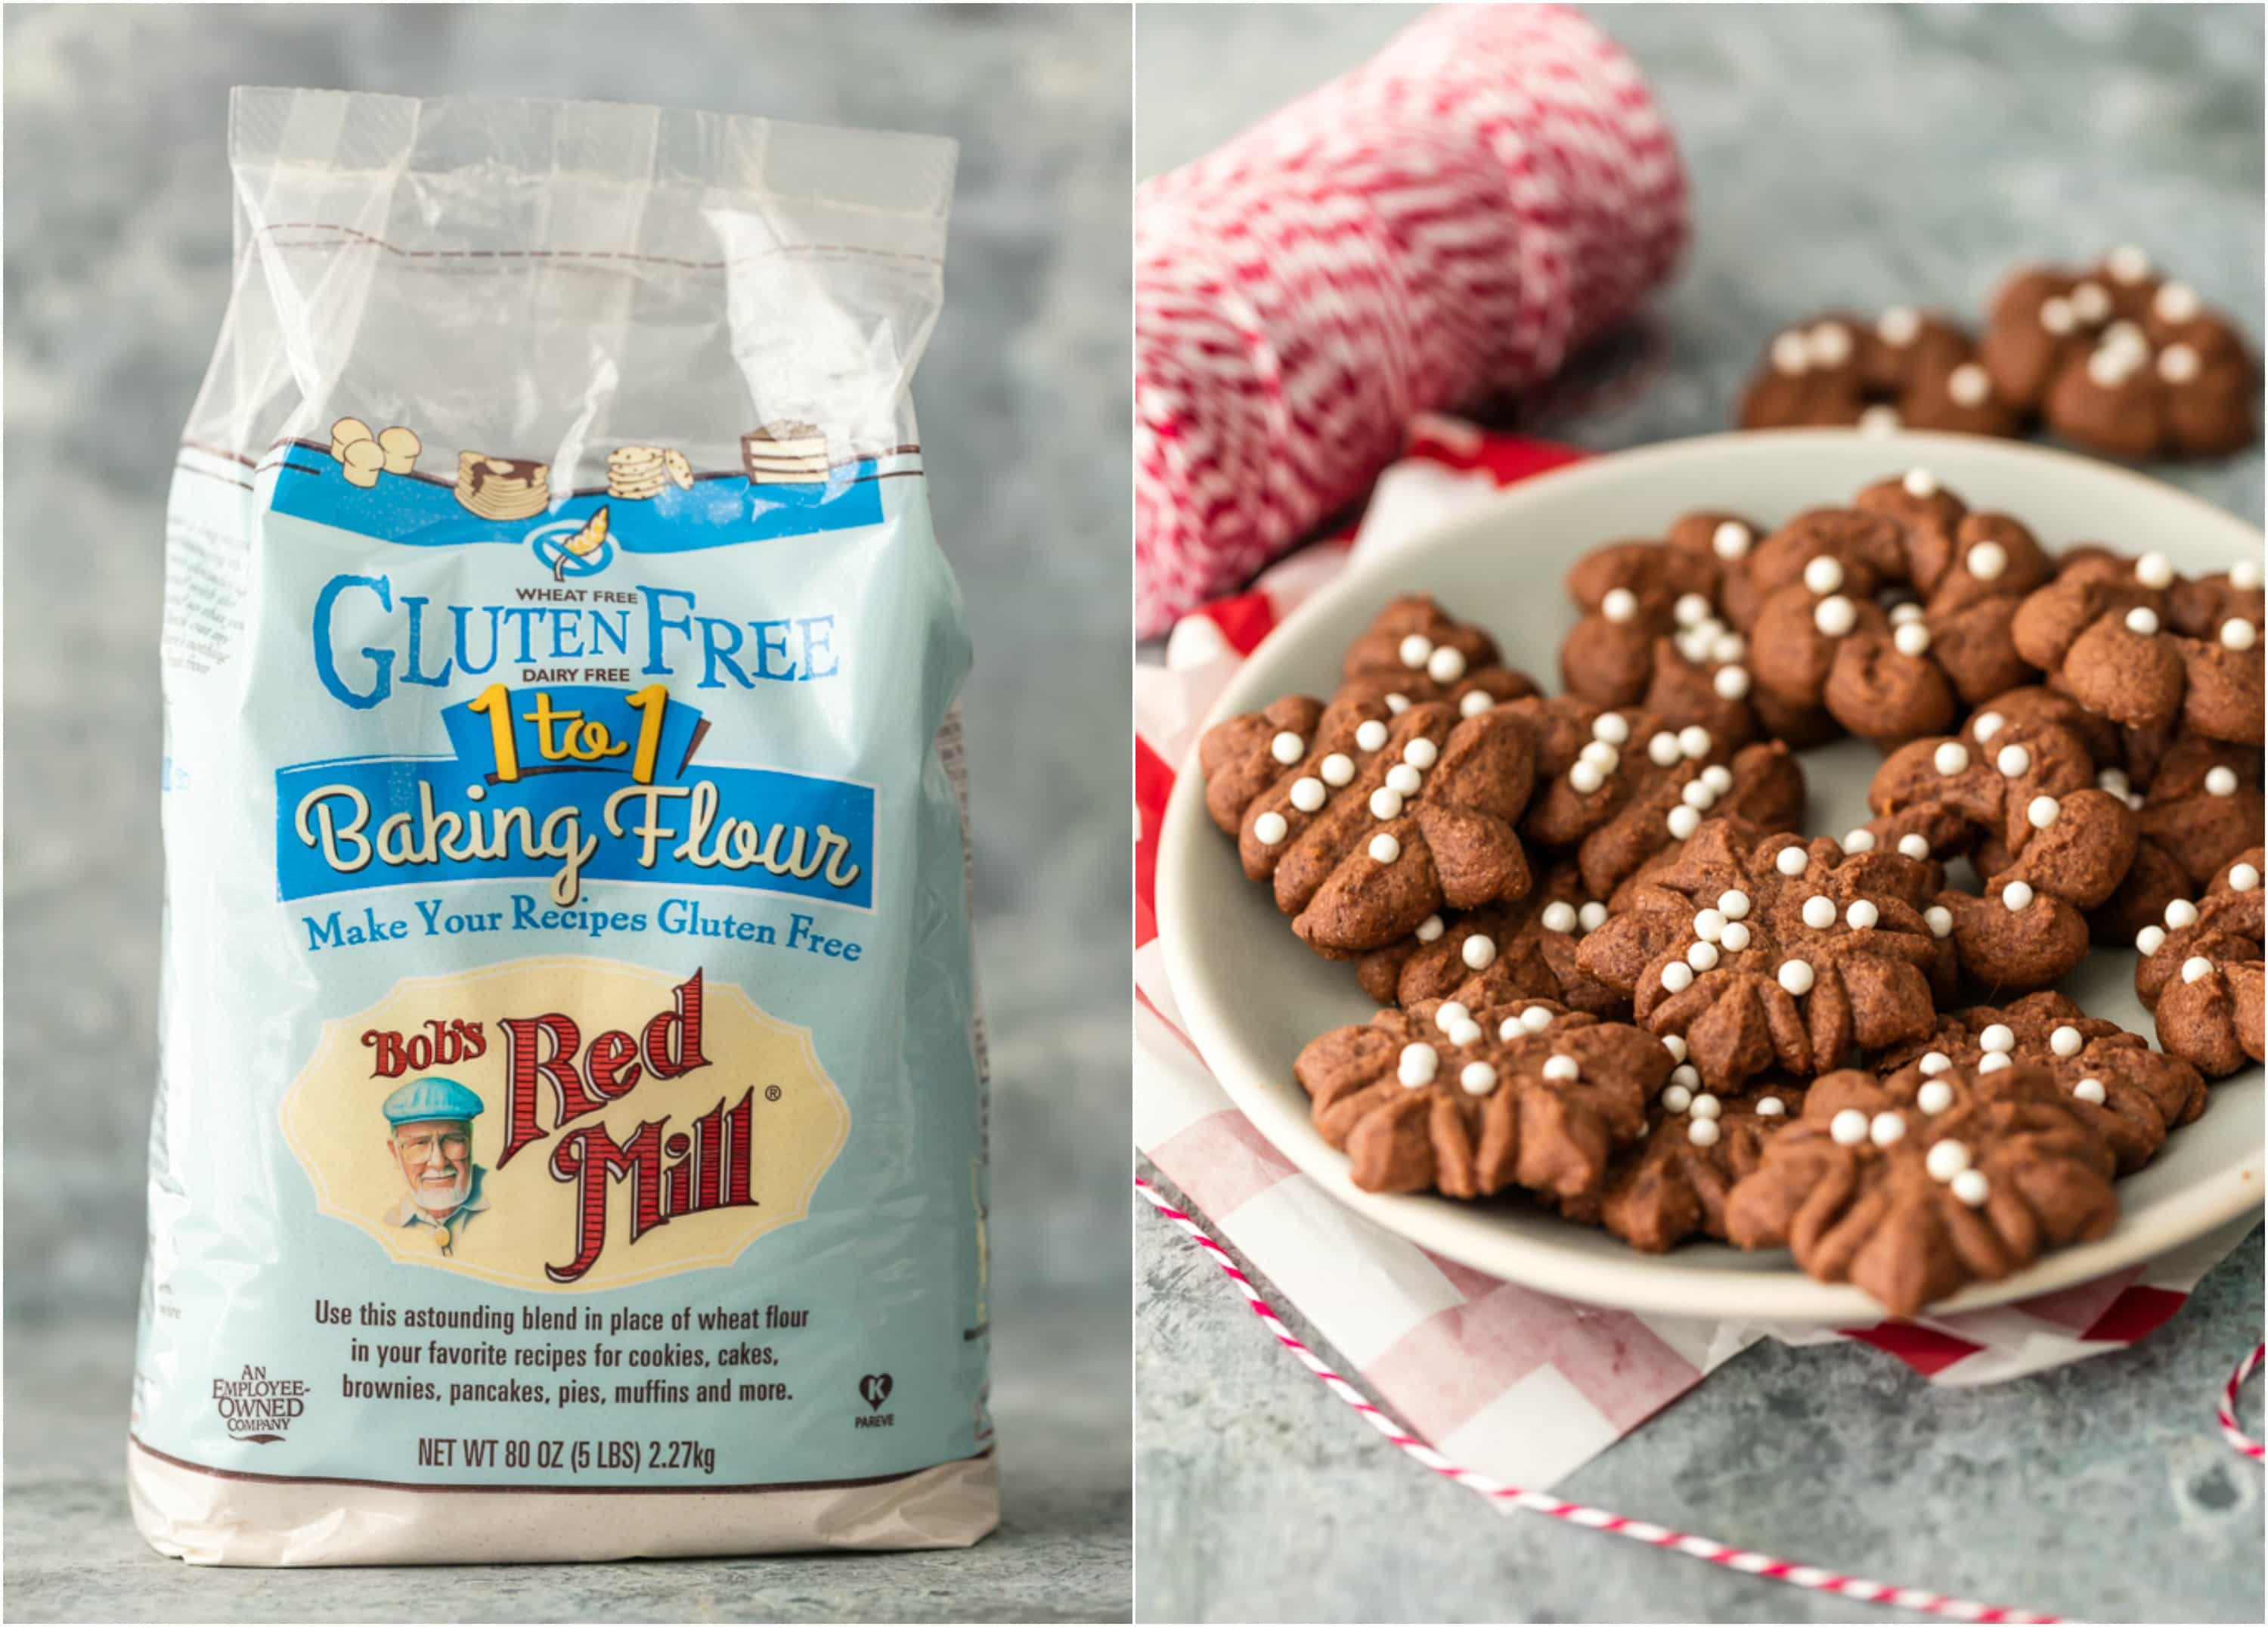 Bob's Red Mill Gluten Free Flour and a plate of spritz cookies